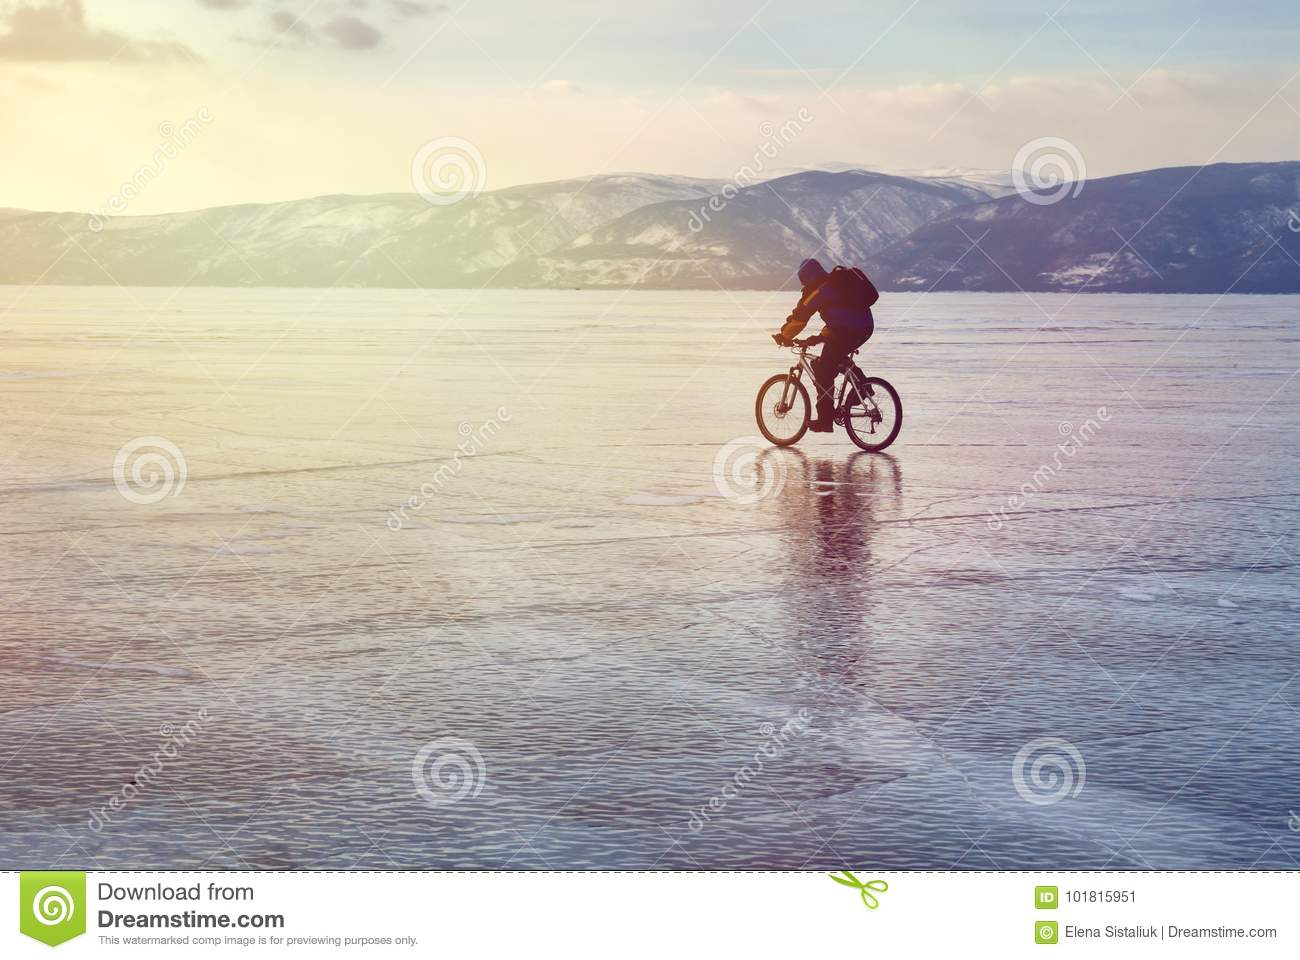 Download Ice Biker Traveler With Backpacks On Bike On Ice Of Lake Baikal. Against The Background Of Sunset Sky, Ice Surface. Winter Sport Stock Image - Image of frost, mountain: 101815951